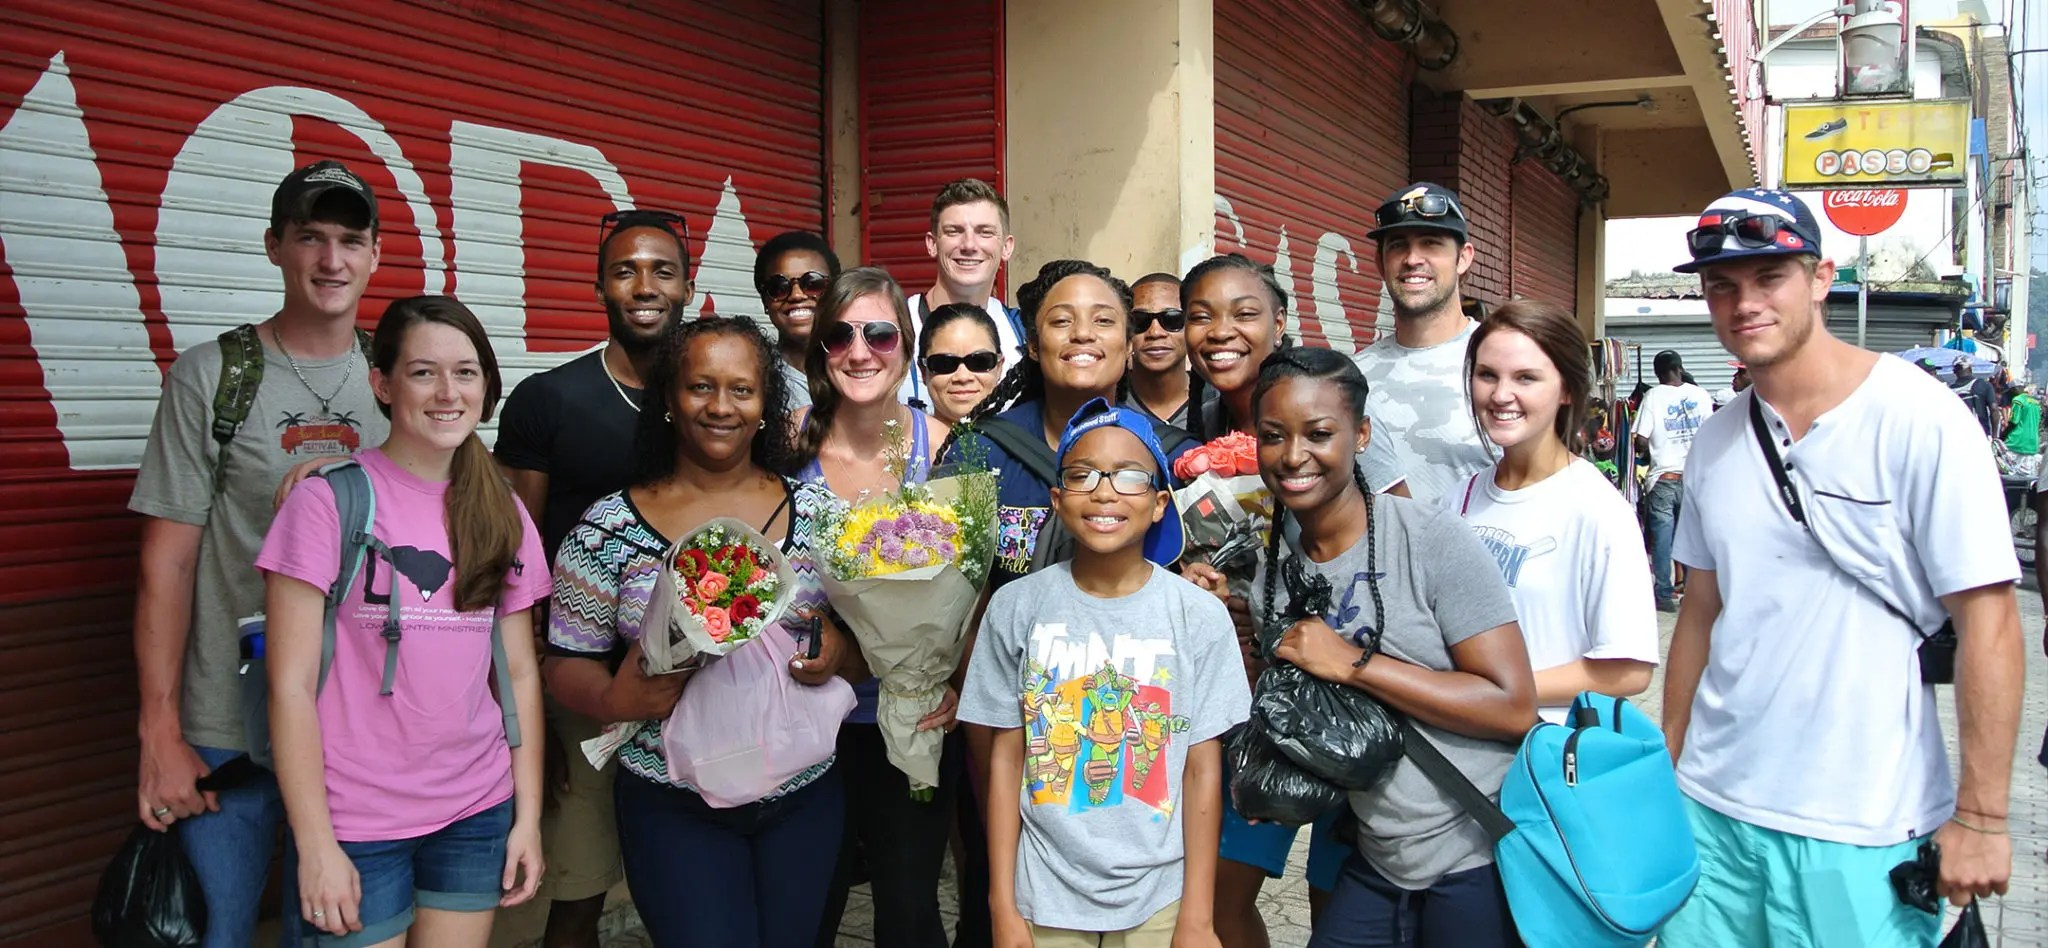 Students in a group photo while on a mission trip to the Dominican Republic.